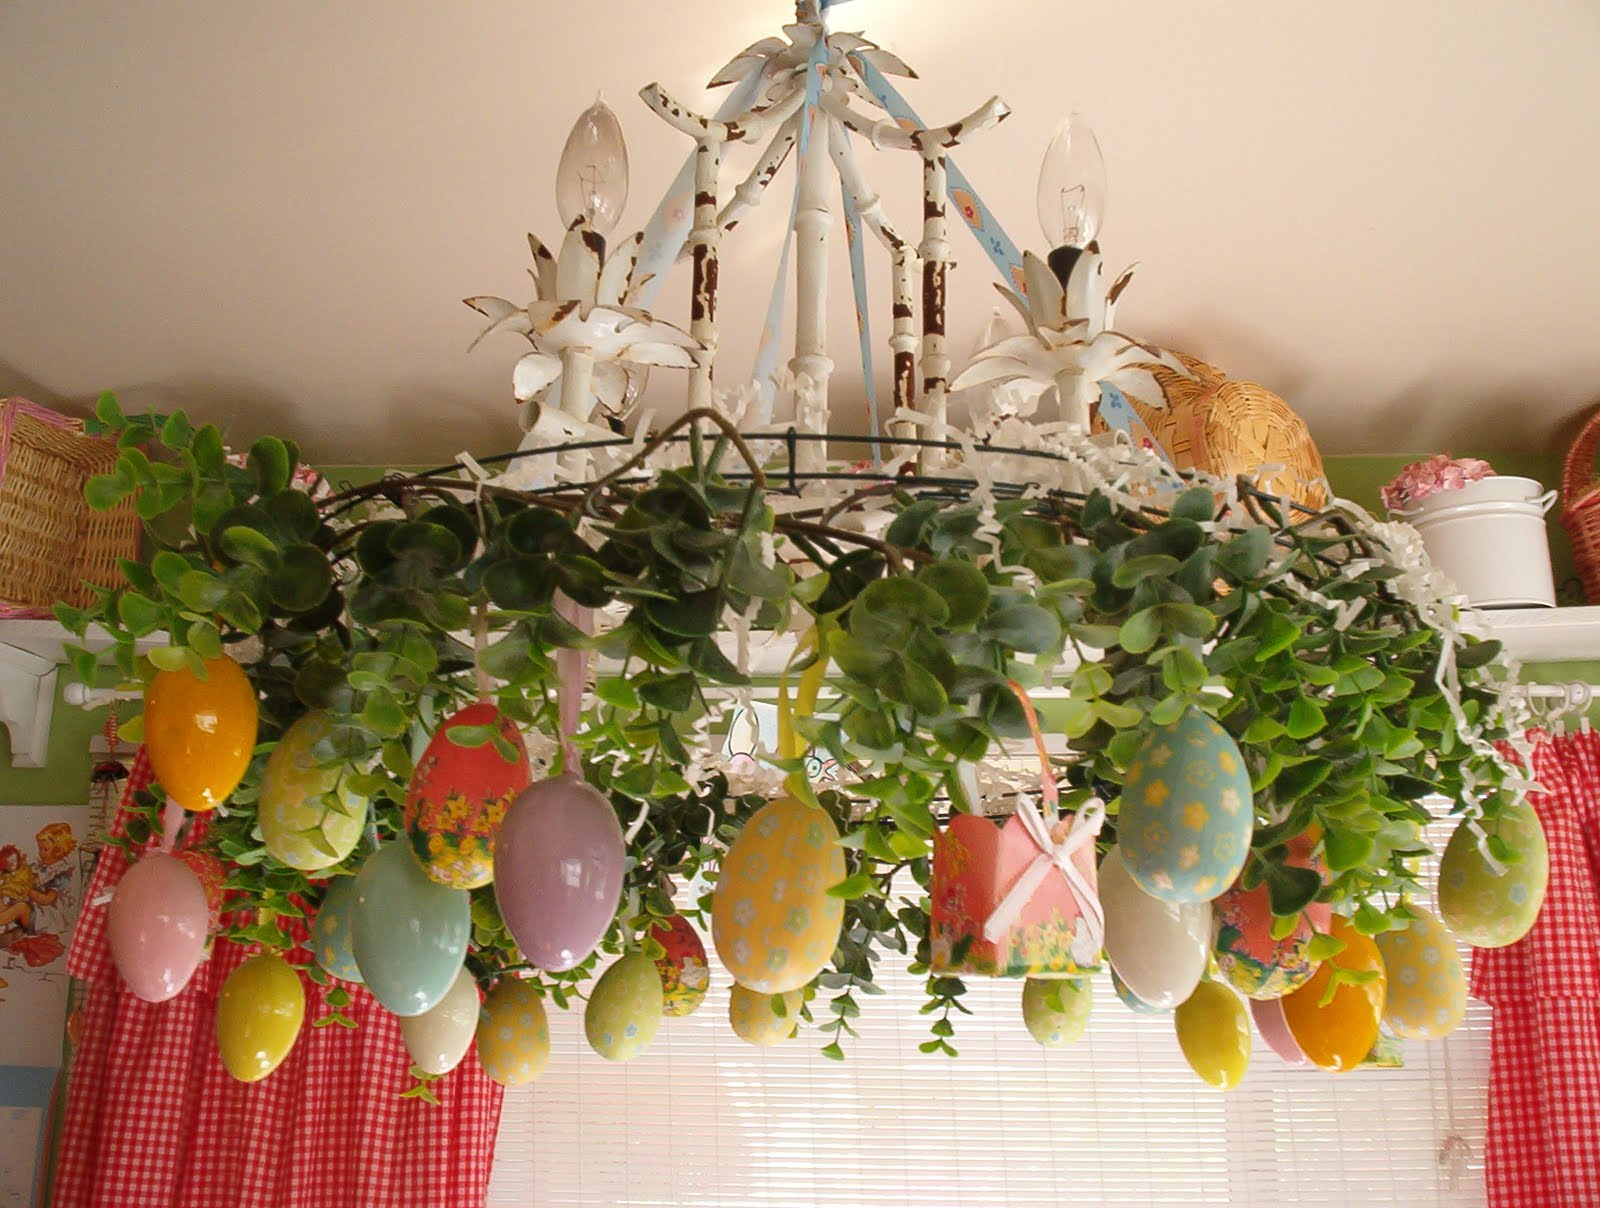 Easter decorations 2017 grasscloth wallpaper for Decoration 2017